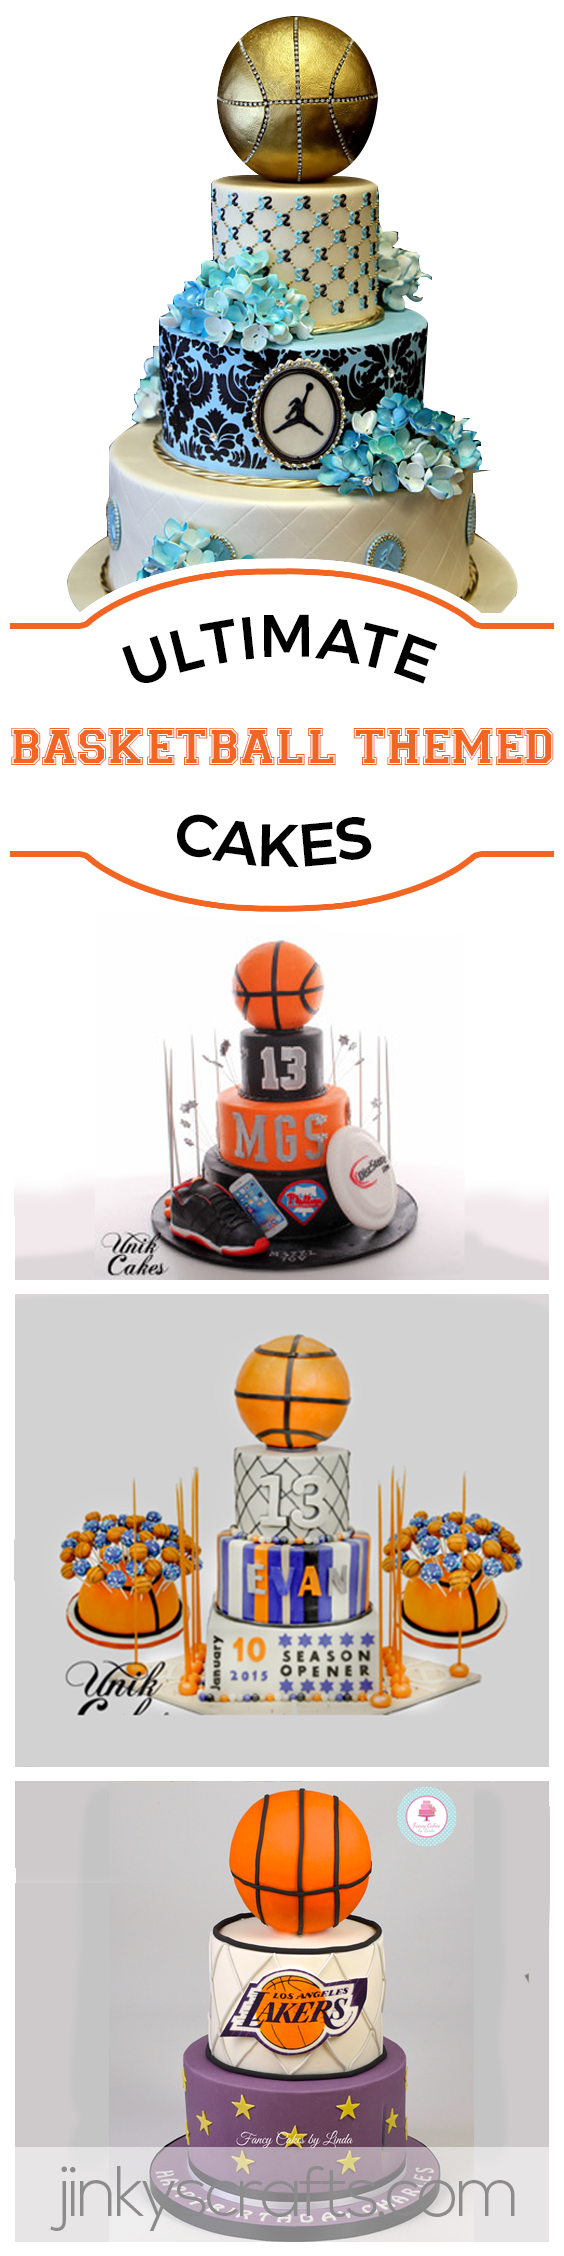 Basketball Themed Invitations + Cakes Ideas for Quinceanera, Baby ...